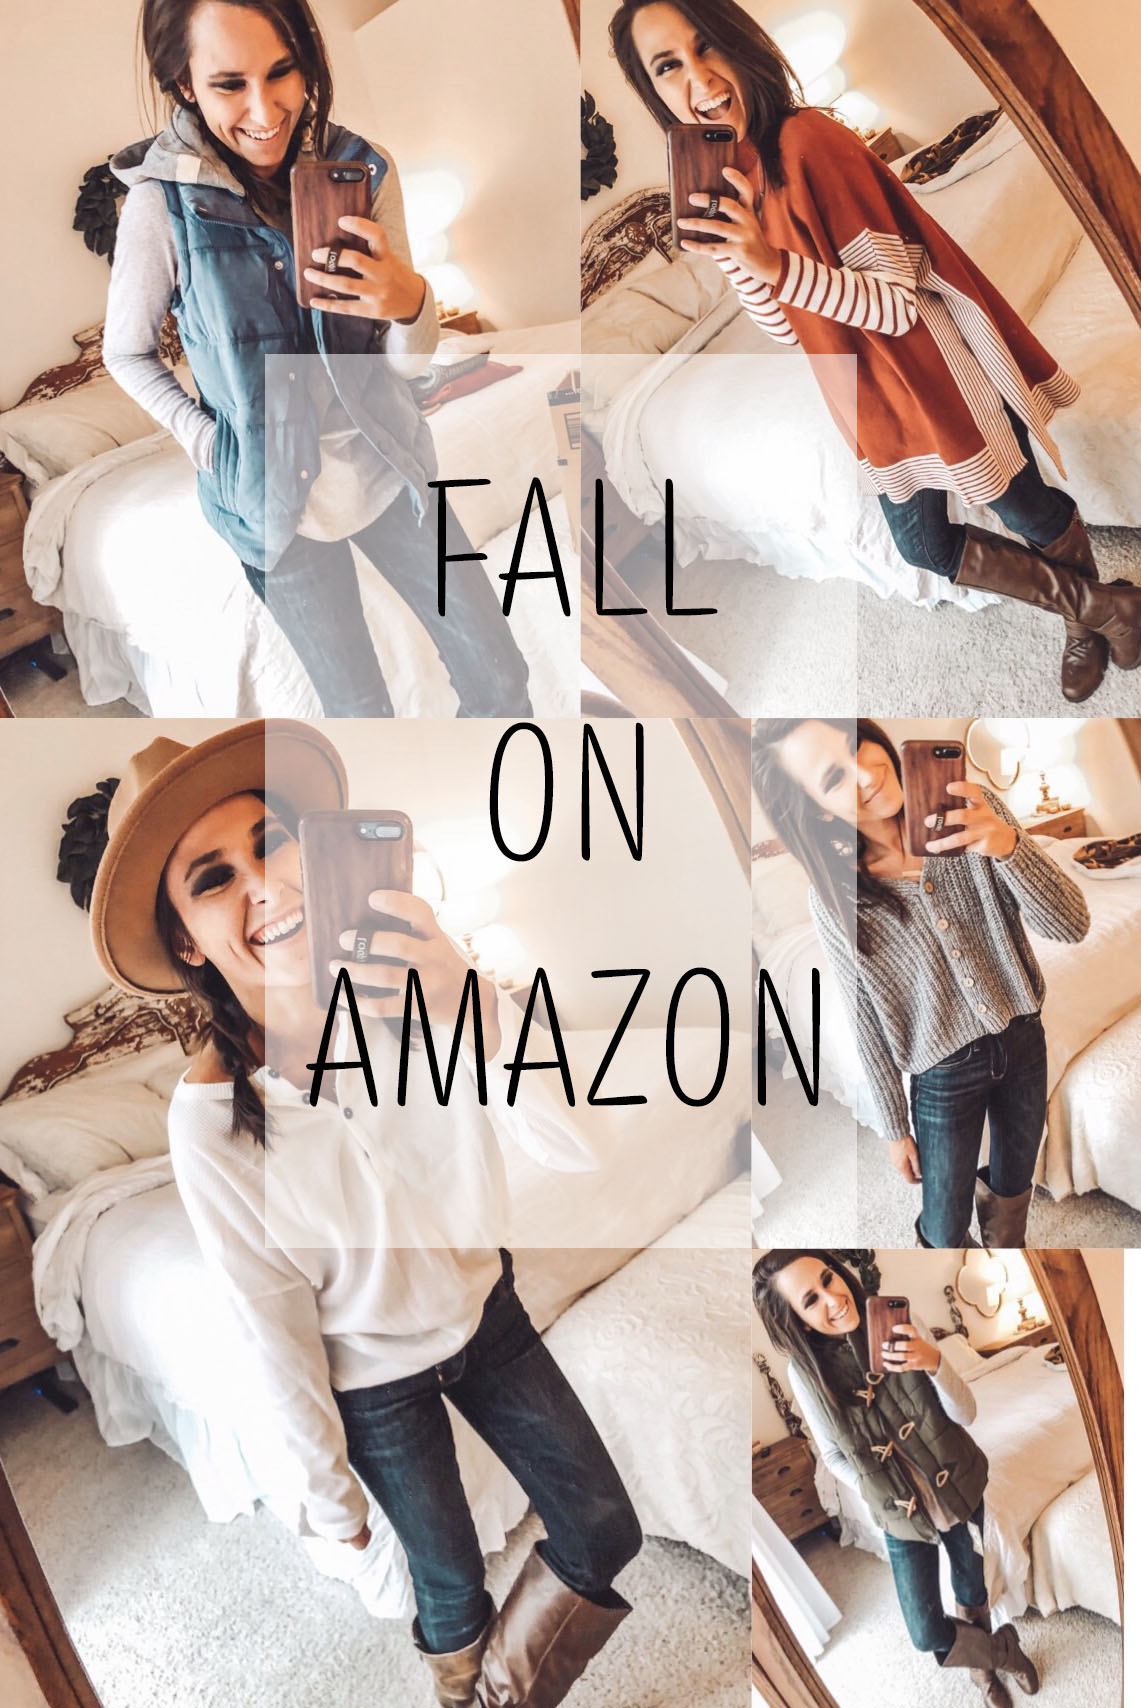 More Fall On Amazon